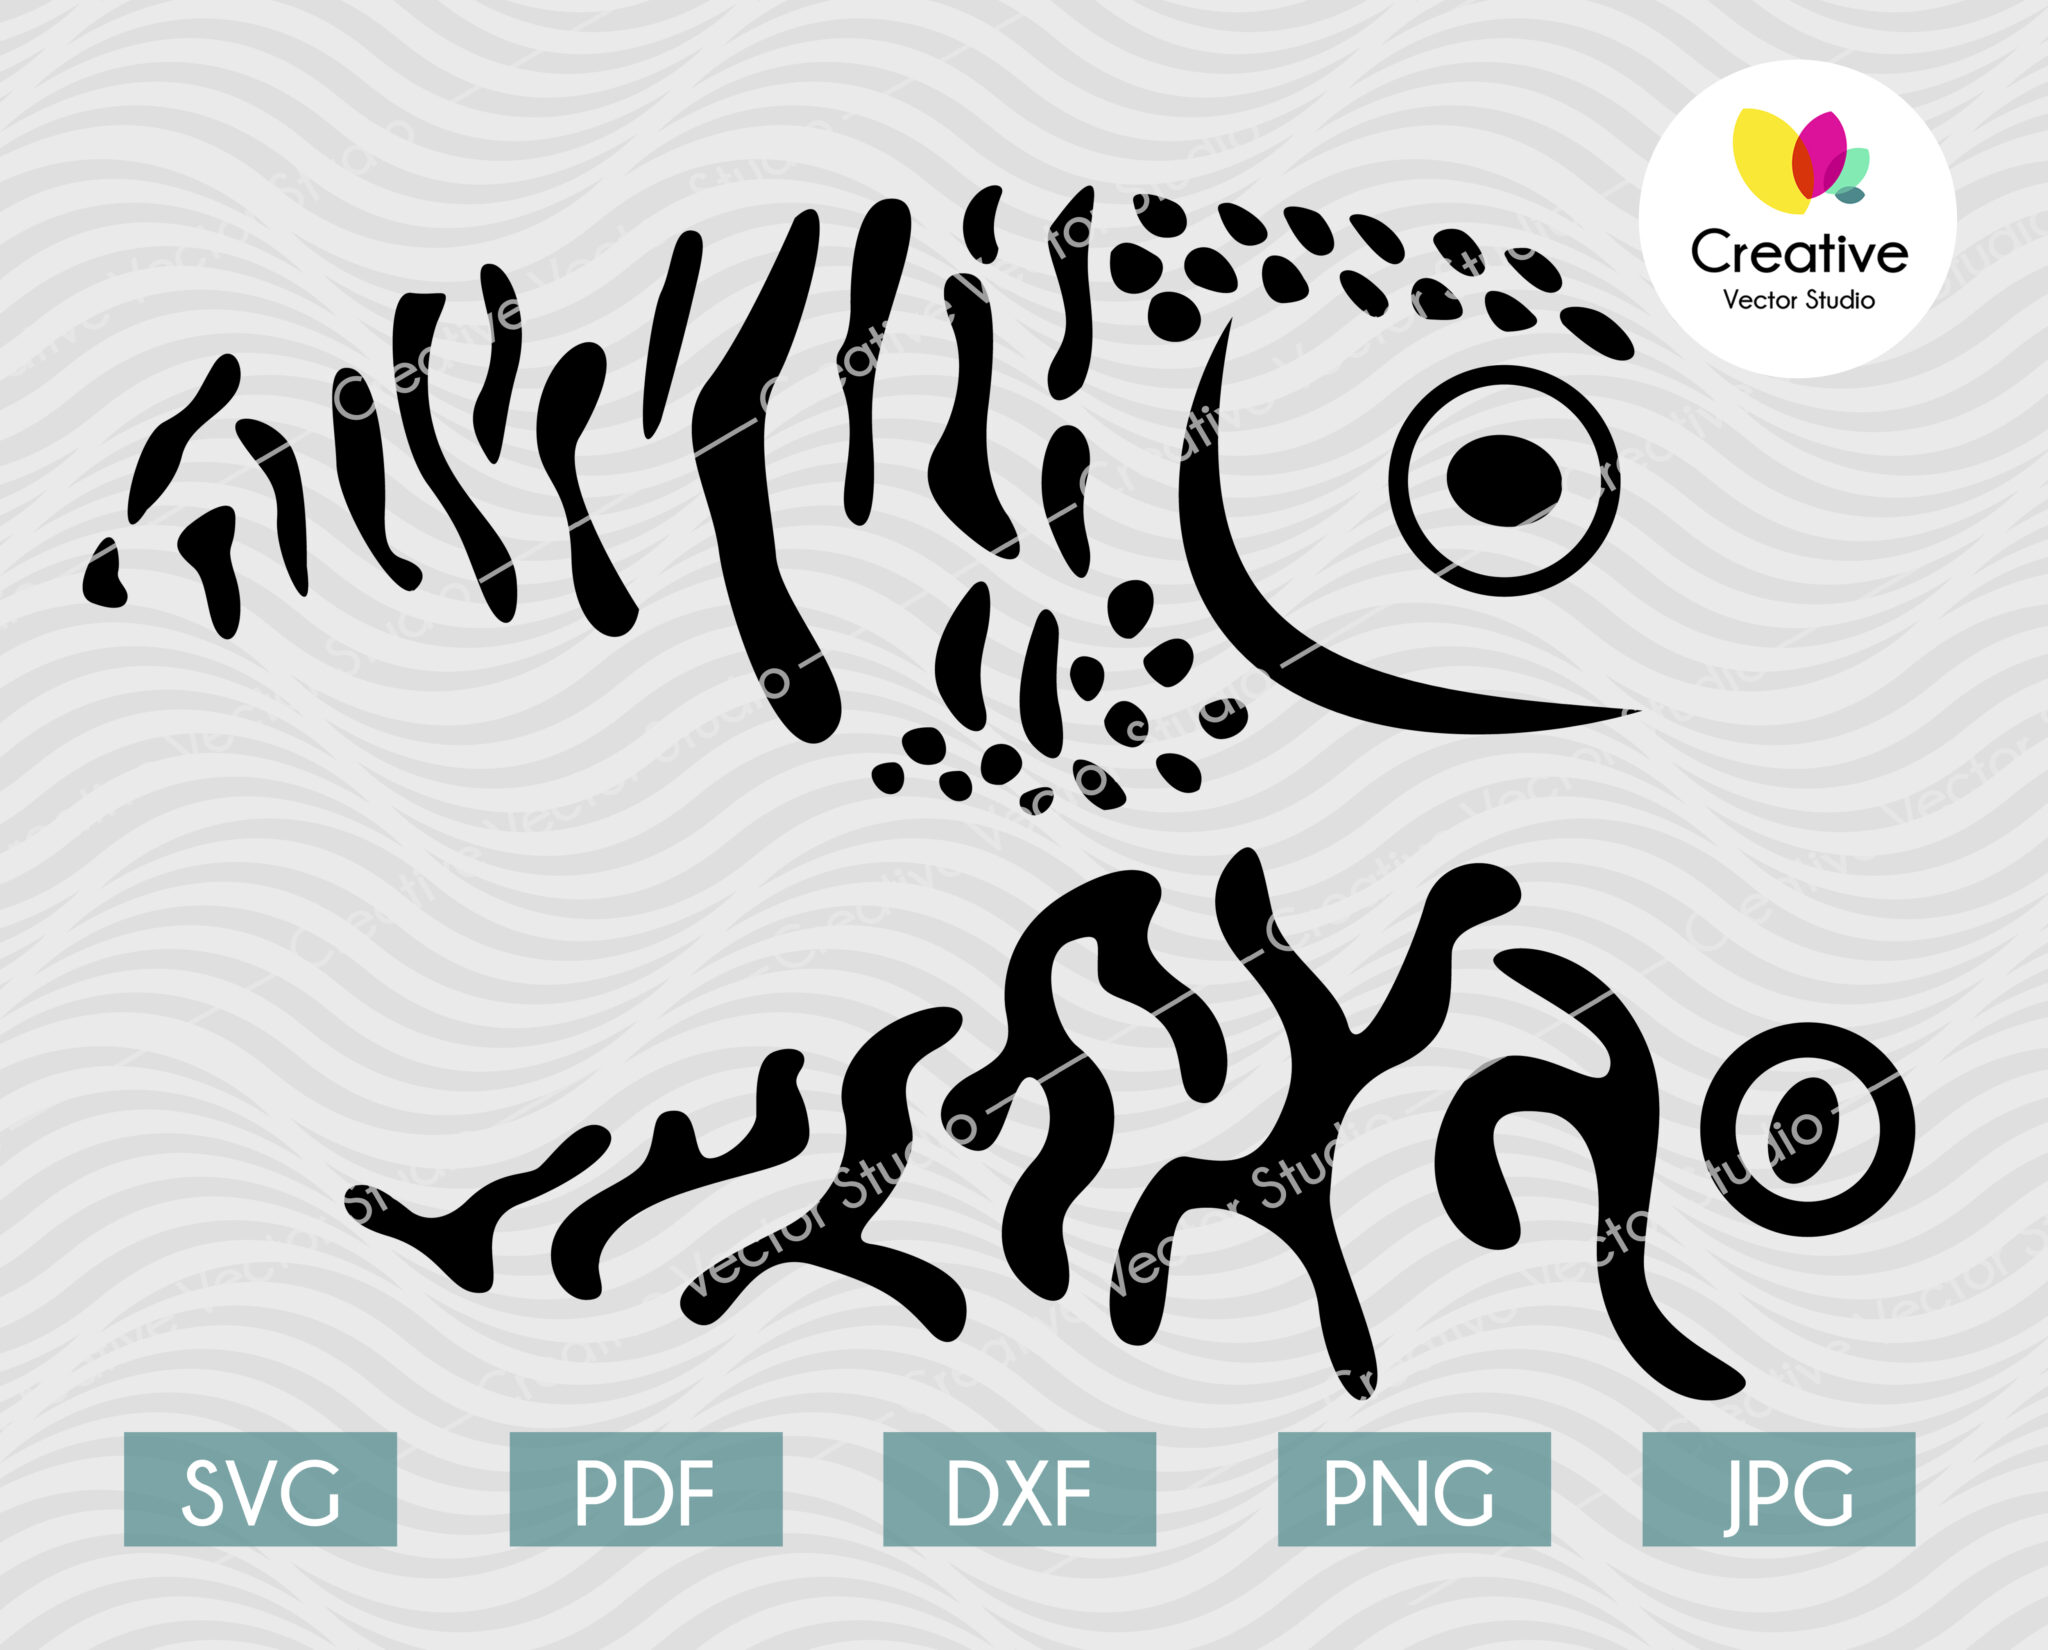 Download Fishing Svg Free 1719 File Include Svg Png Eps Dxf Free Svg Cutting Files